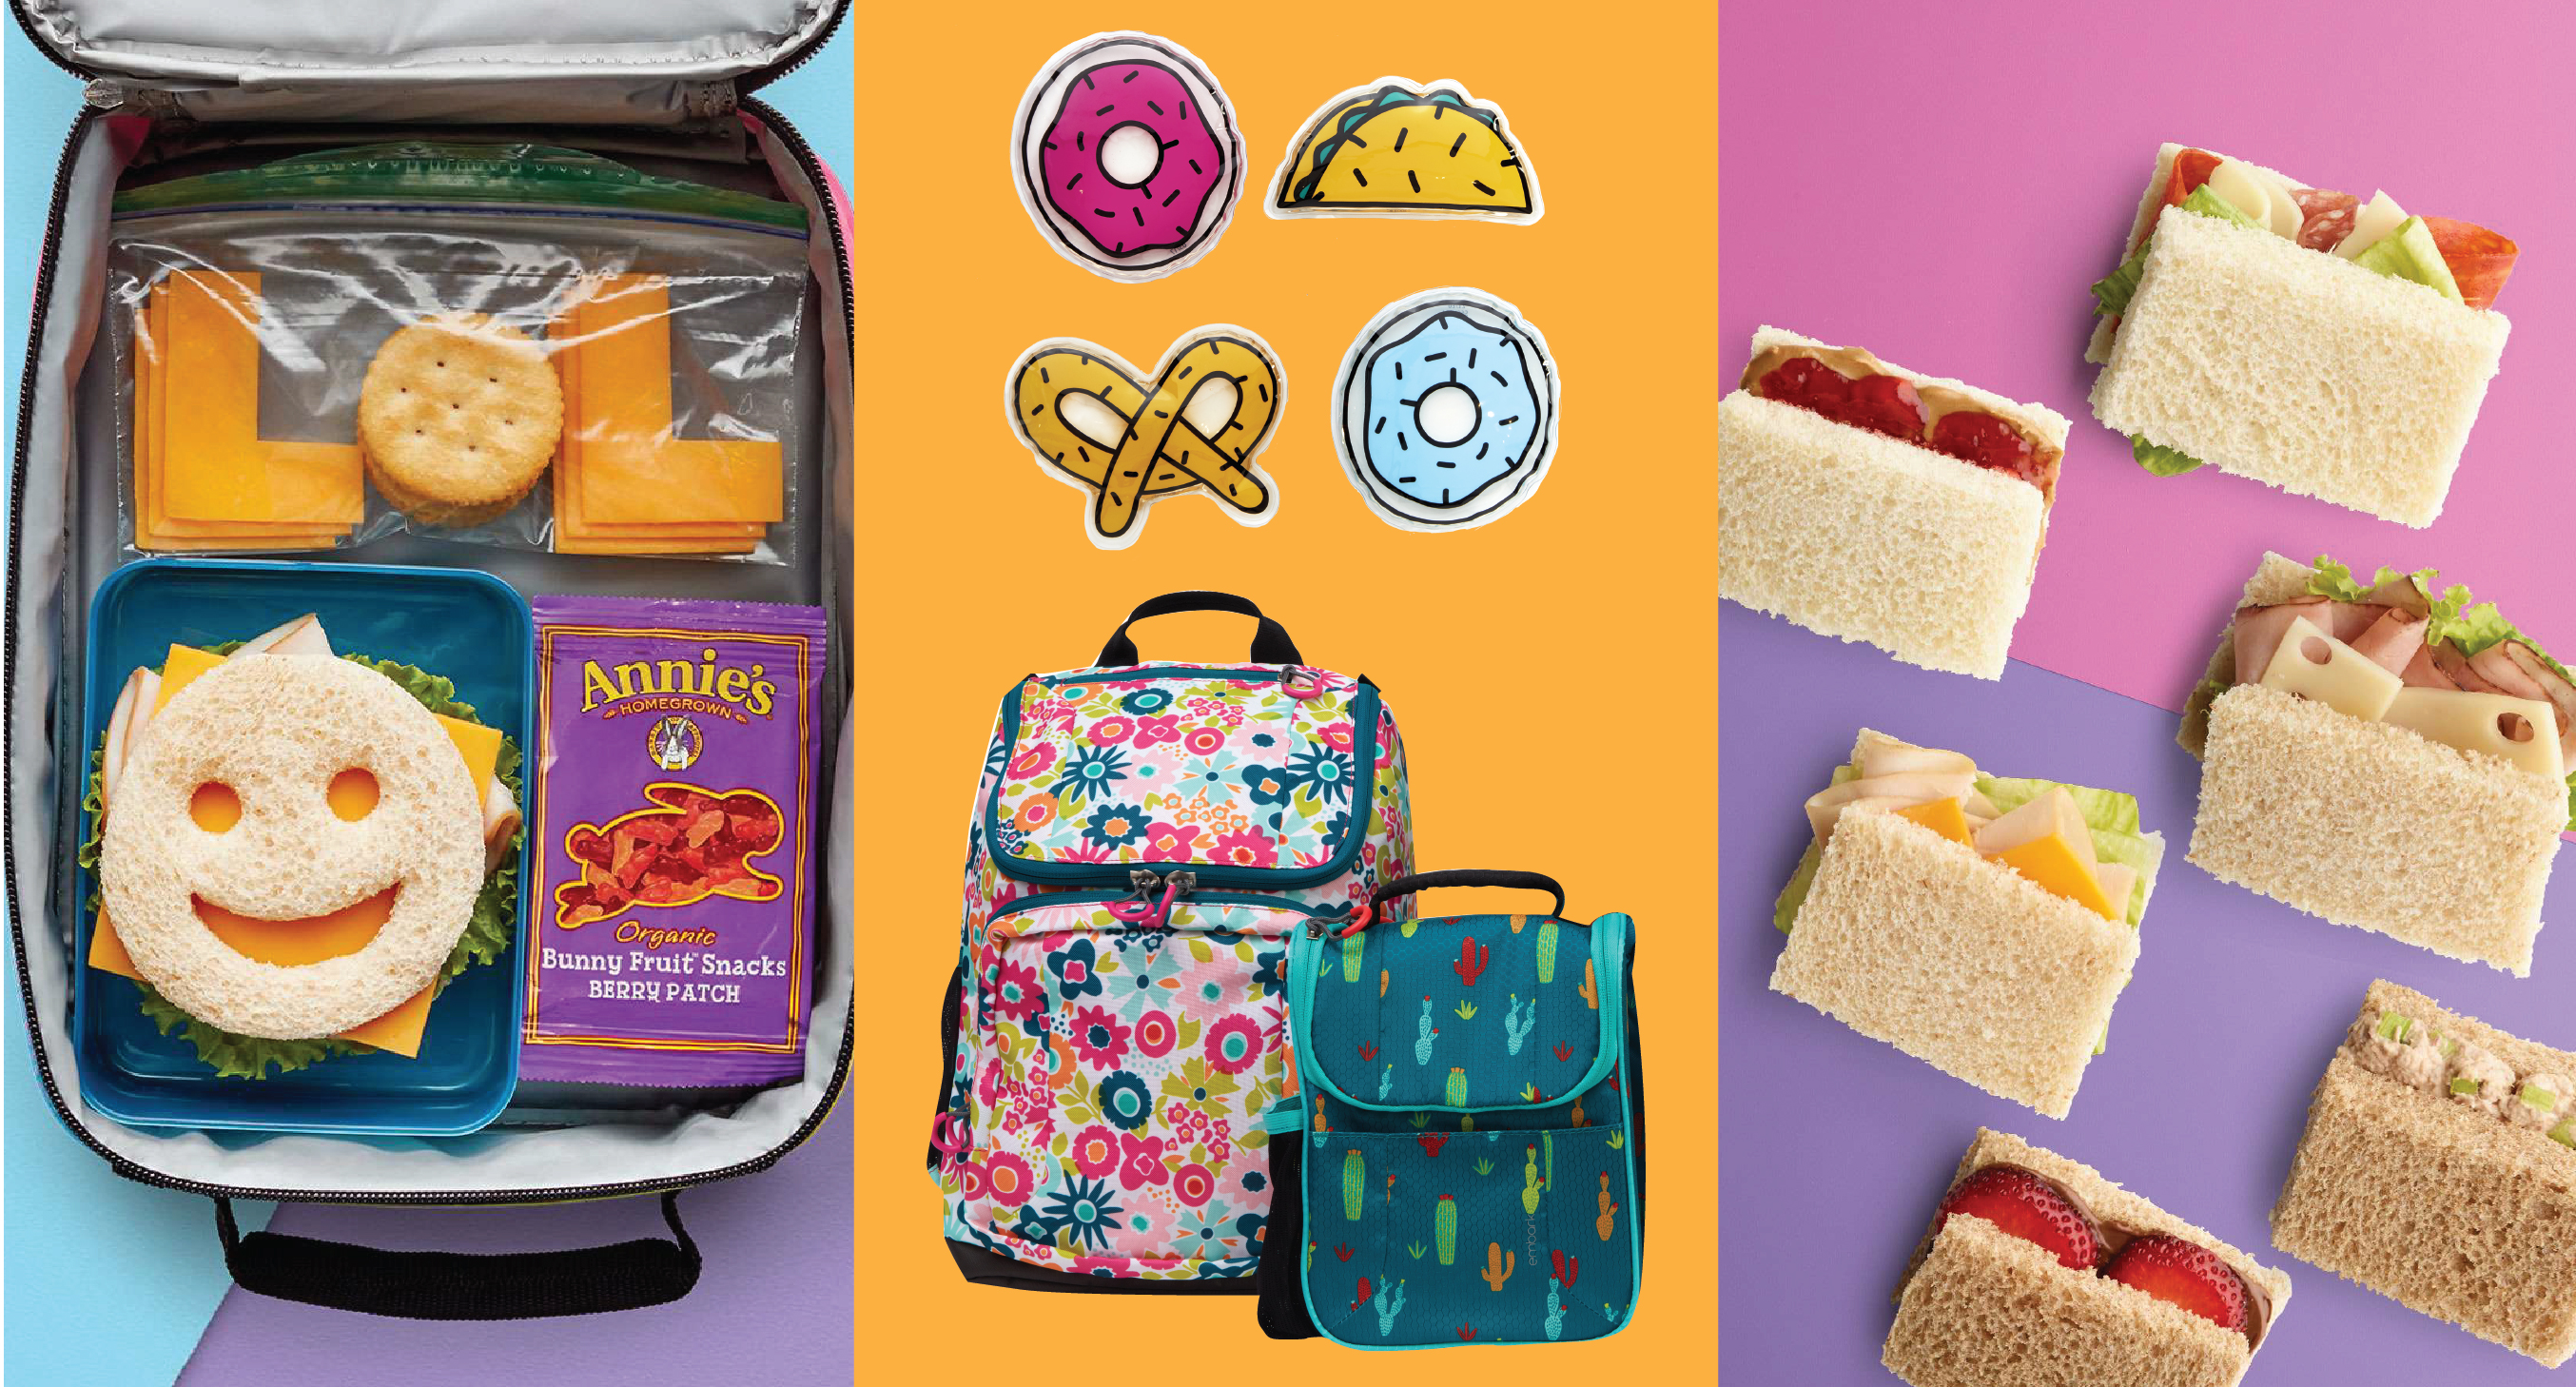 A smiley-face sandwich and LOL cheese & crackers, food-shaped cooler packs with a backpack and lunch kit, and a variety of sandwiches